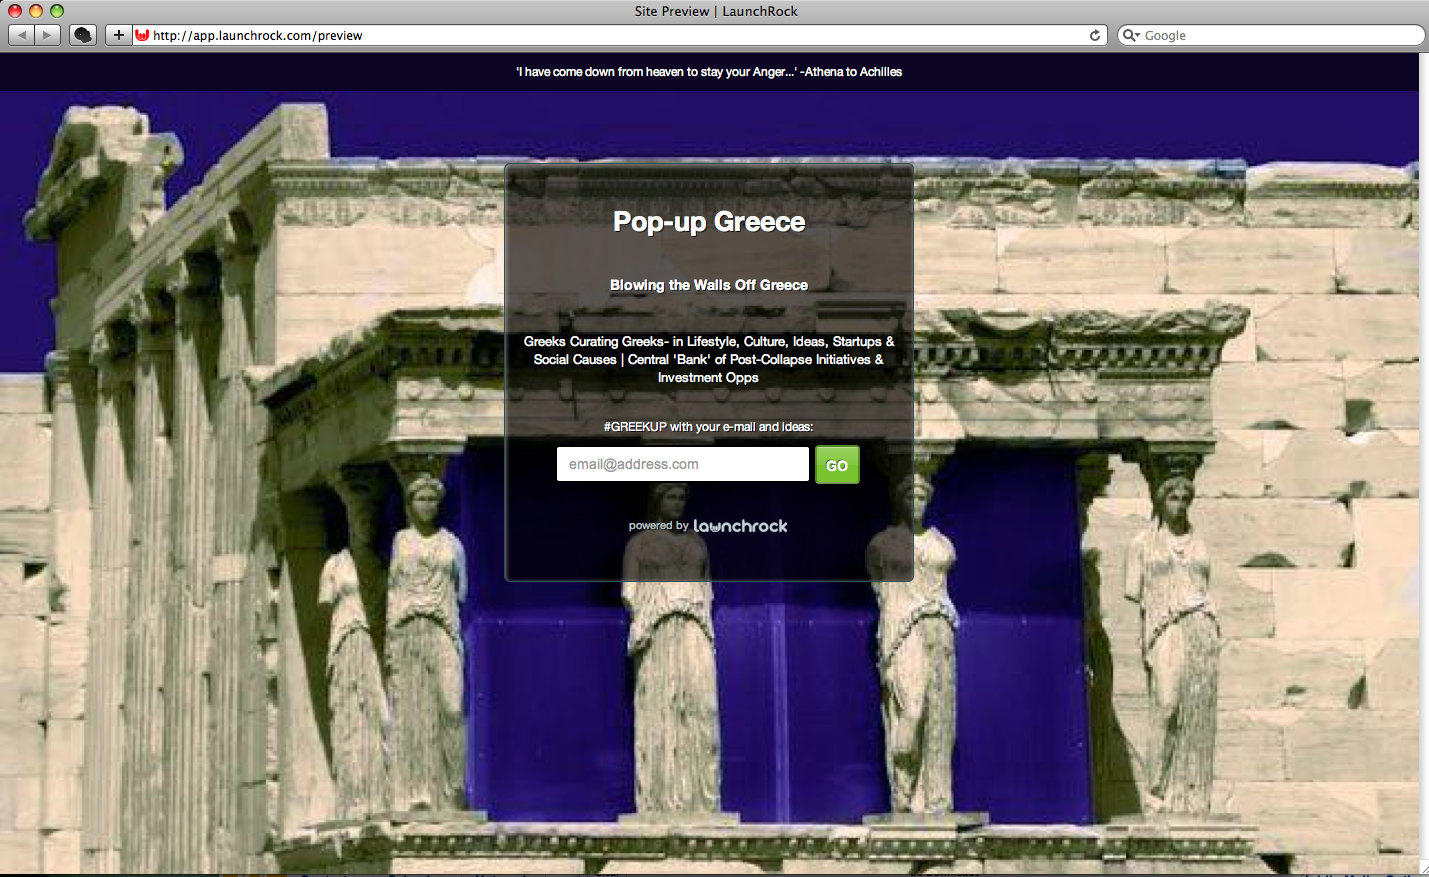 Pop-Up Greece Seeks To Blow The Walls Off Greece with PR-Curation of Post-Collapse Initiatives